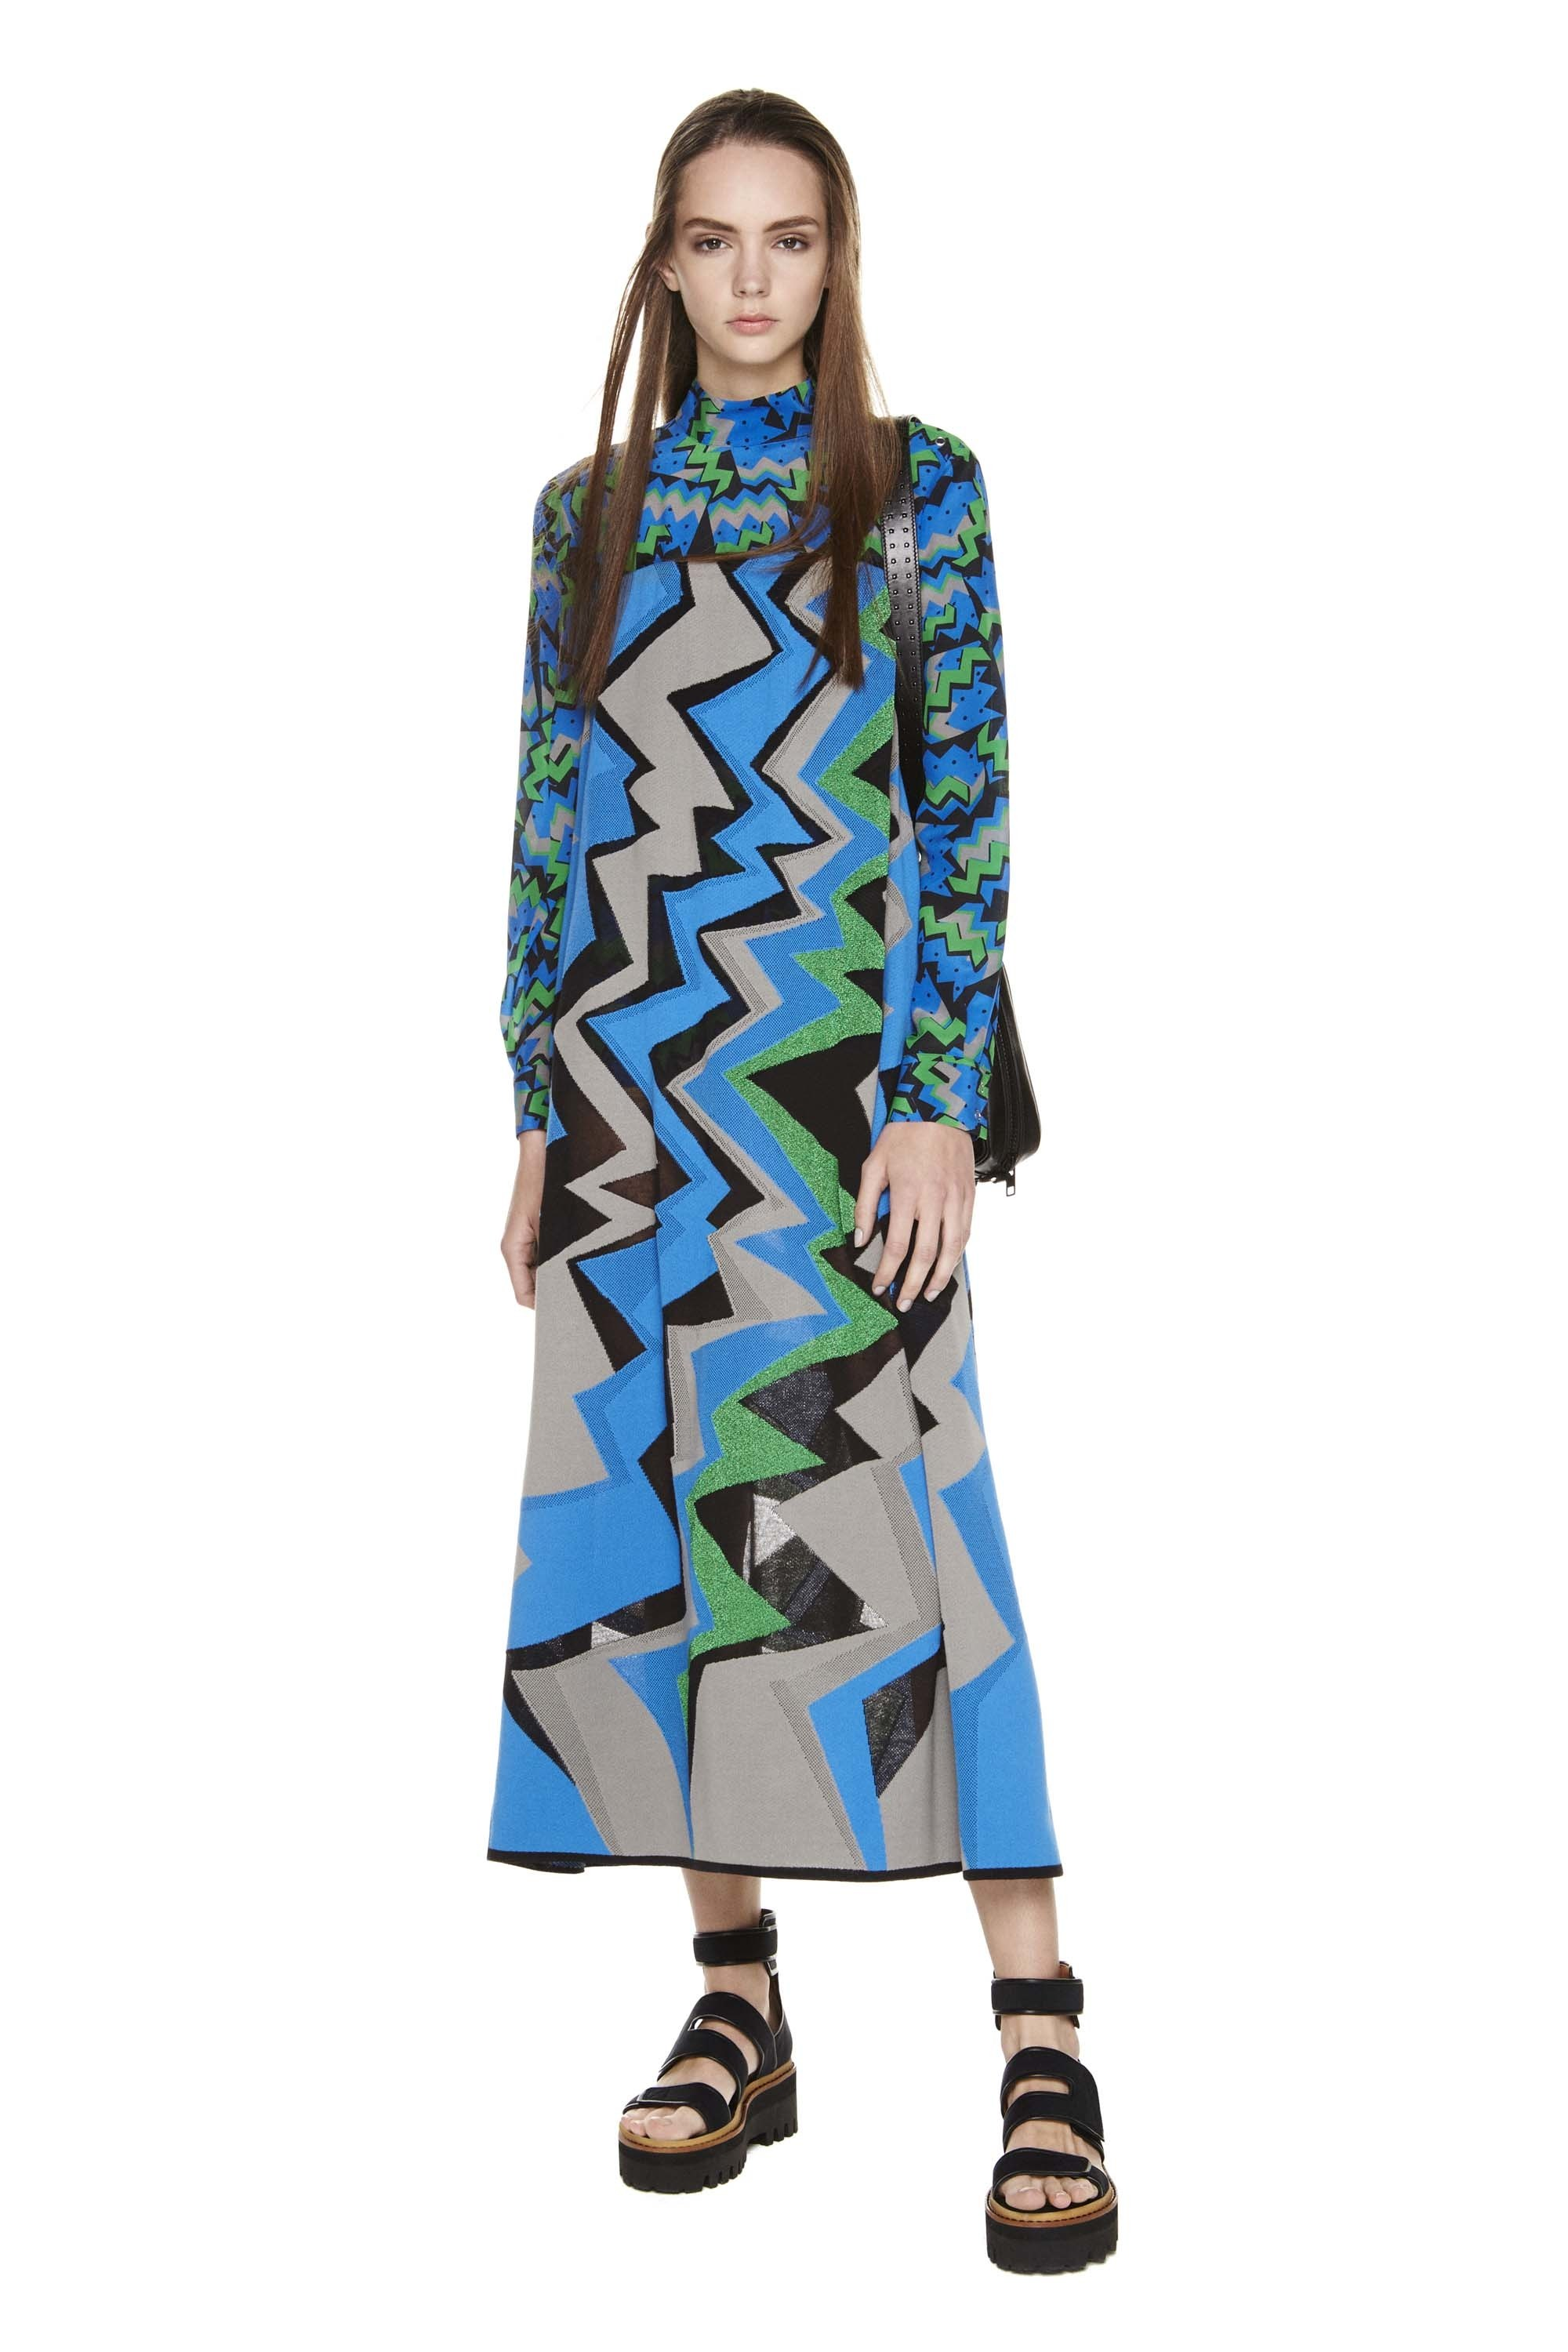 12-m-missoni-resort-17.jpg